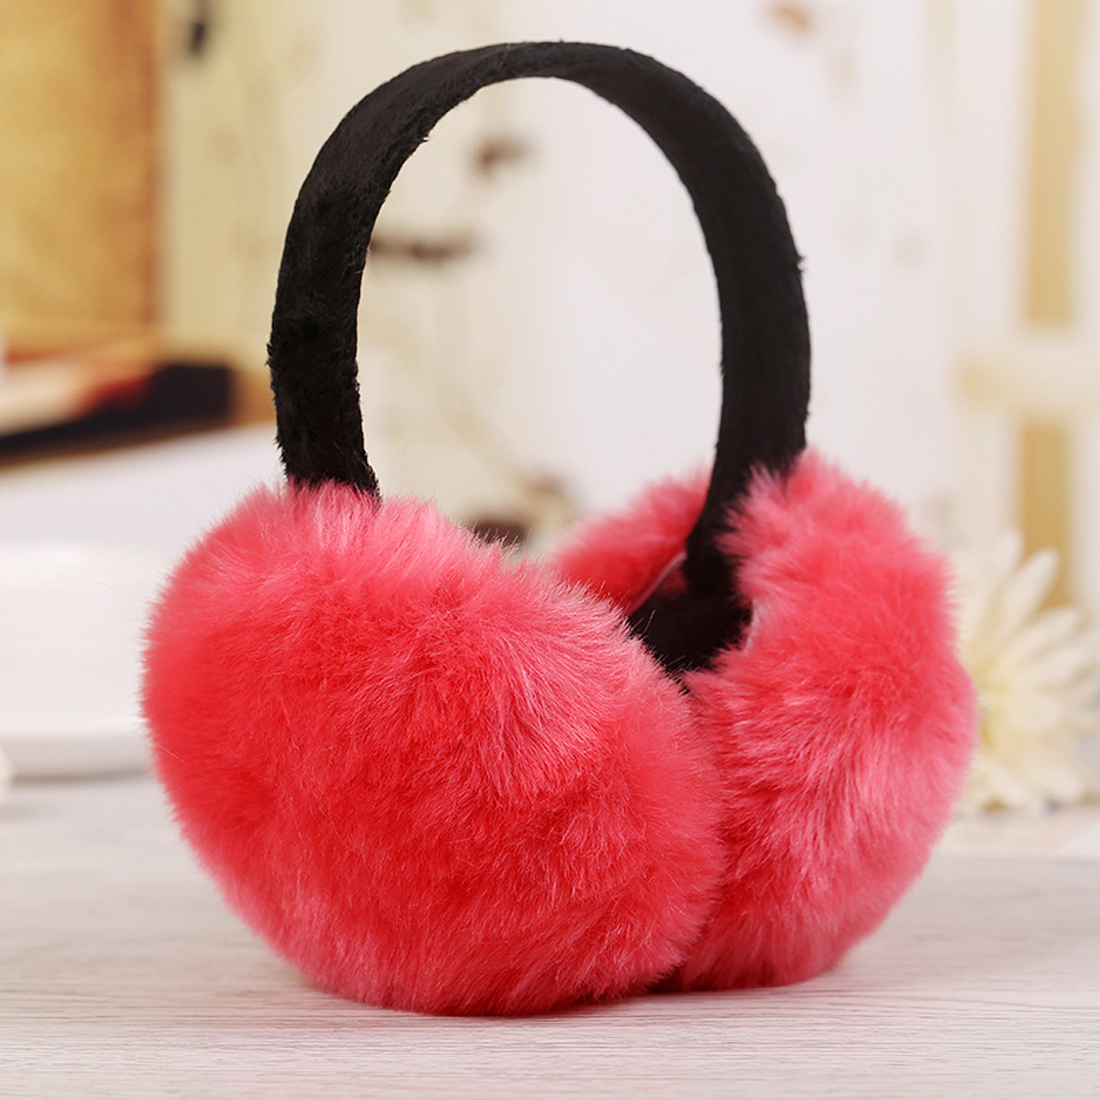 Hot Winter Women Men Earmuffs Lovers Ear Warmer Imitation Rabbit Plush Plain Teenage Earmuffs Student Girl Ear Muffs